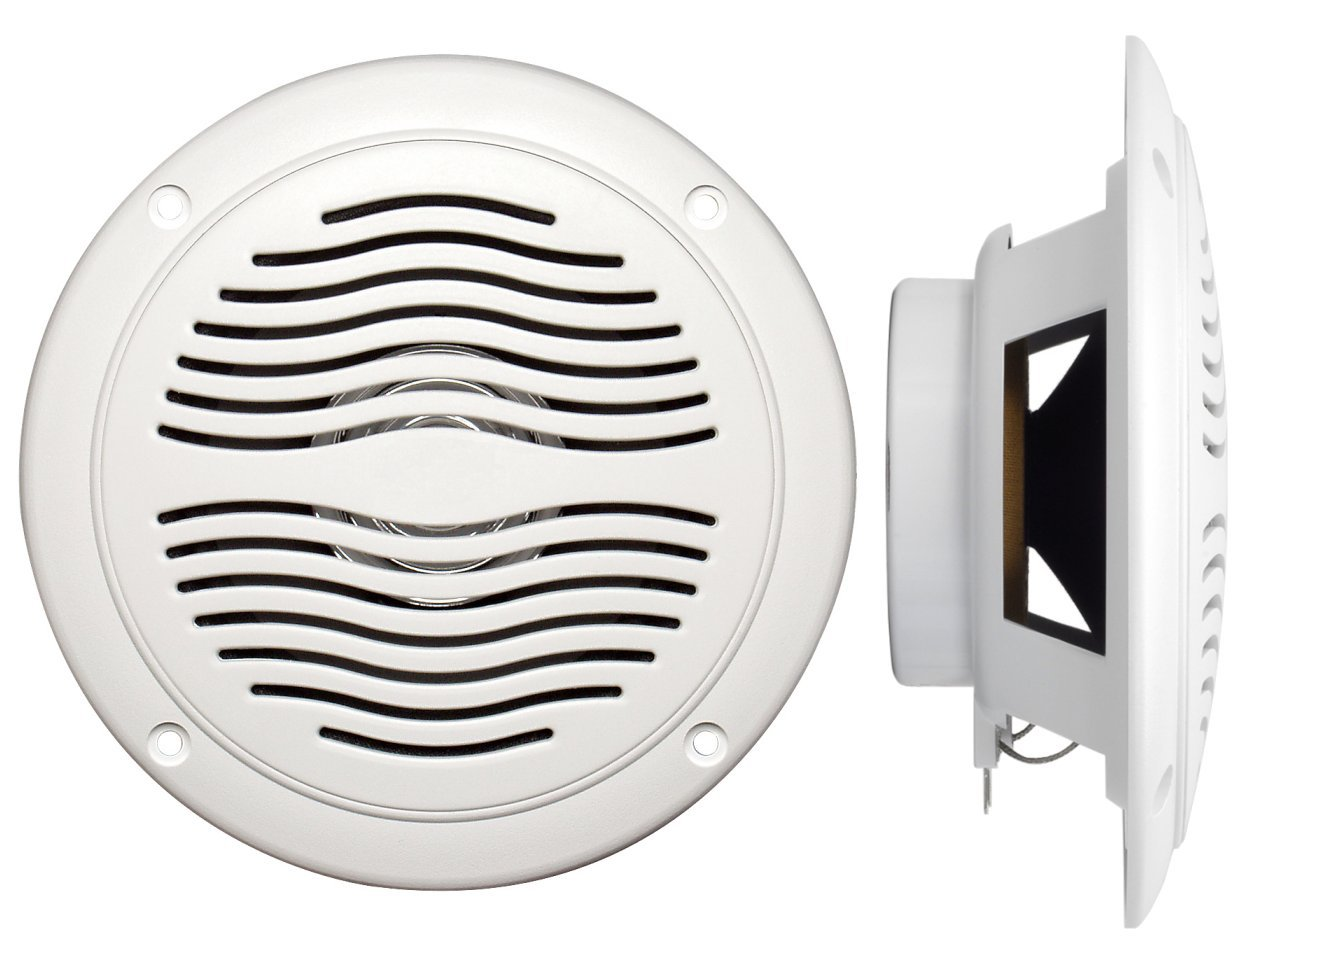 Get 2019's Best Deal On Magnadyne WR40W Marine Speakers | Rock The on wire clothing, wire connector, wire ball, wire holder, wire nut, wire cap, wire leads, wire sleeve, wire antenna, wire lamp,